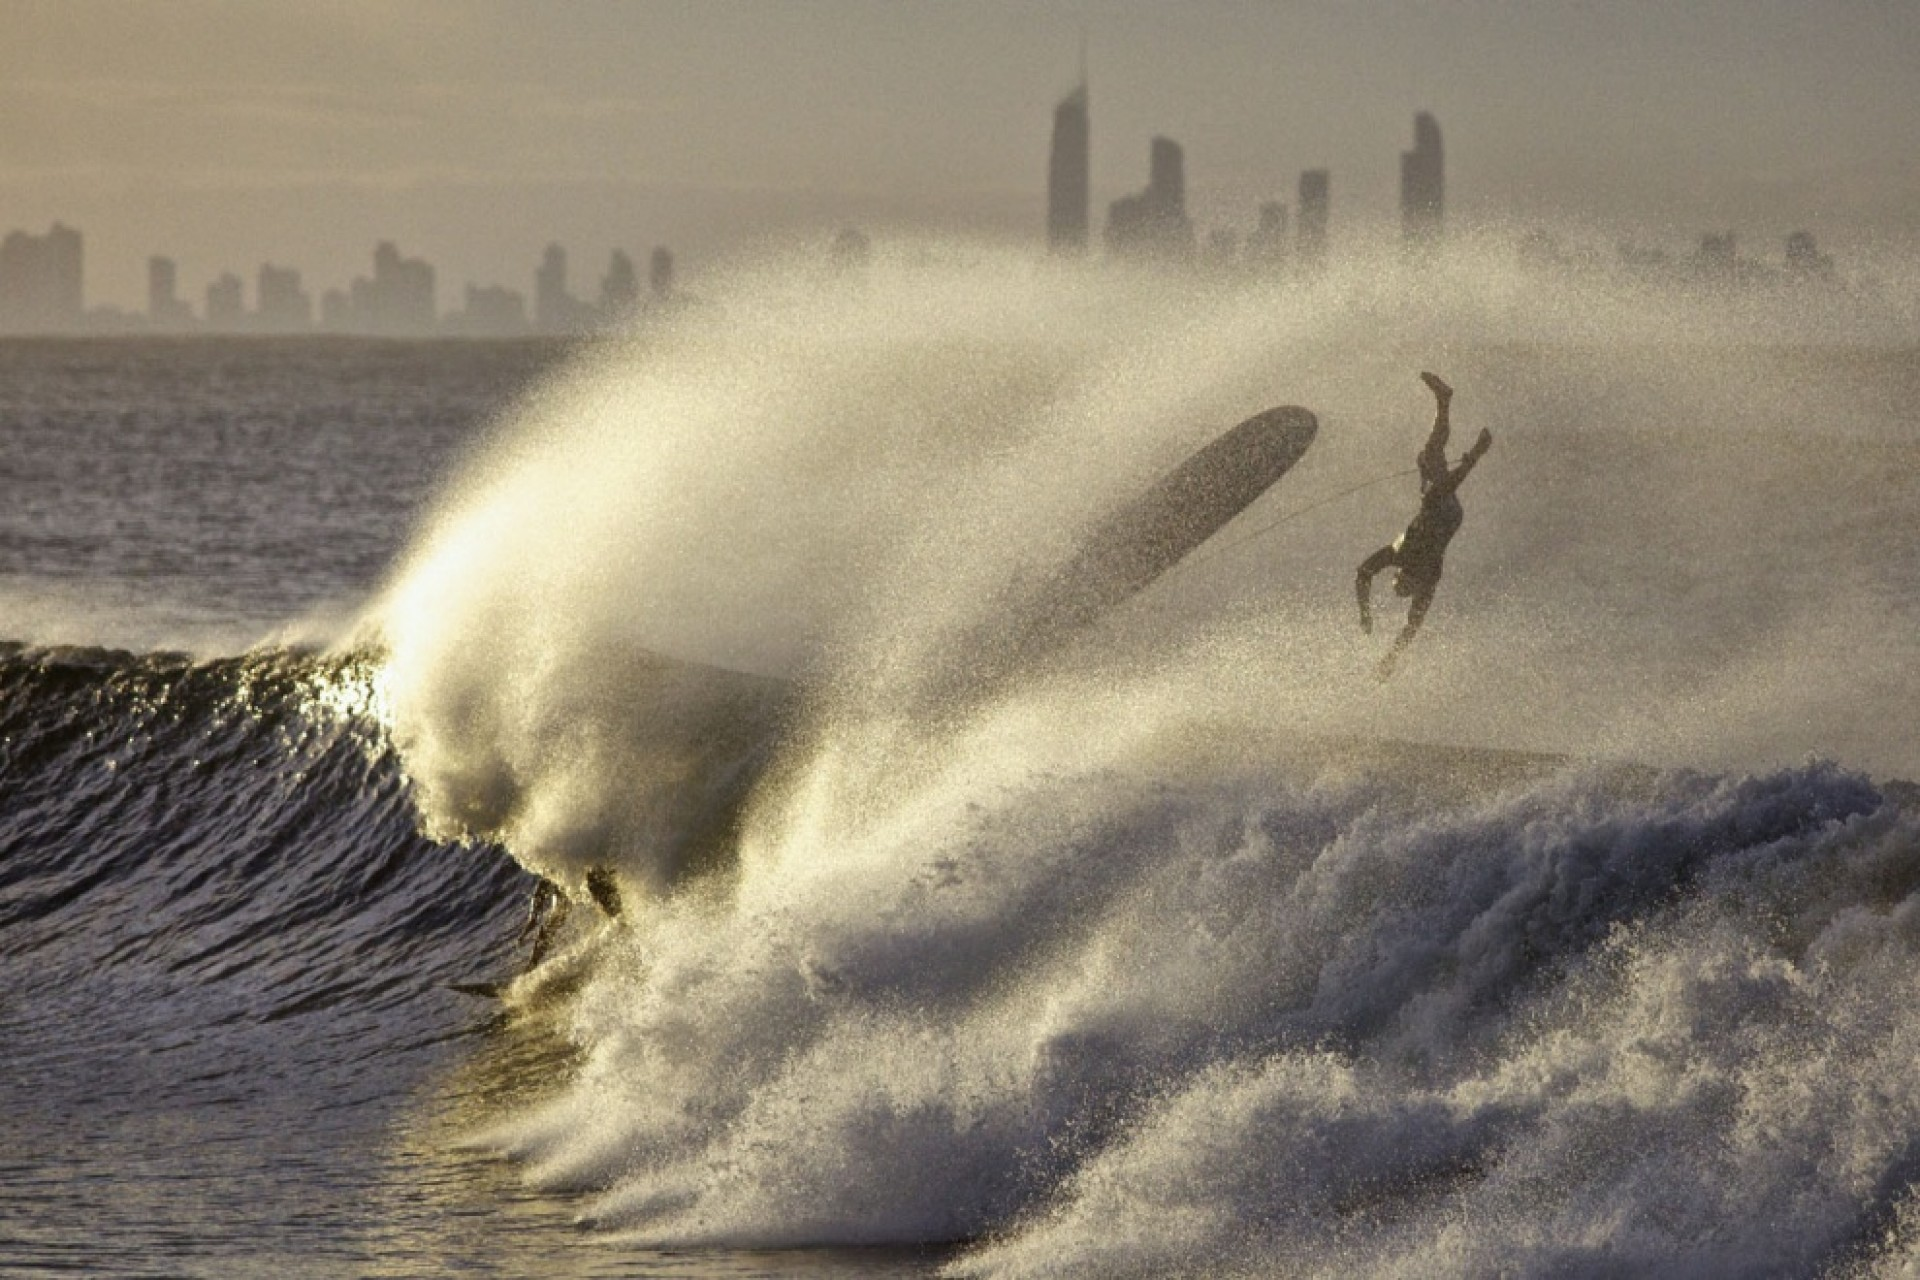 Jaka Adamic's photo of Kirra